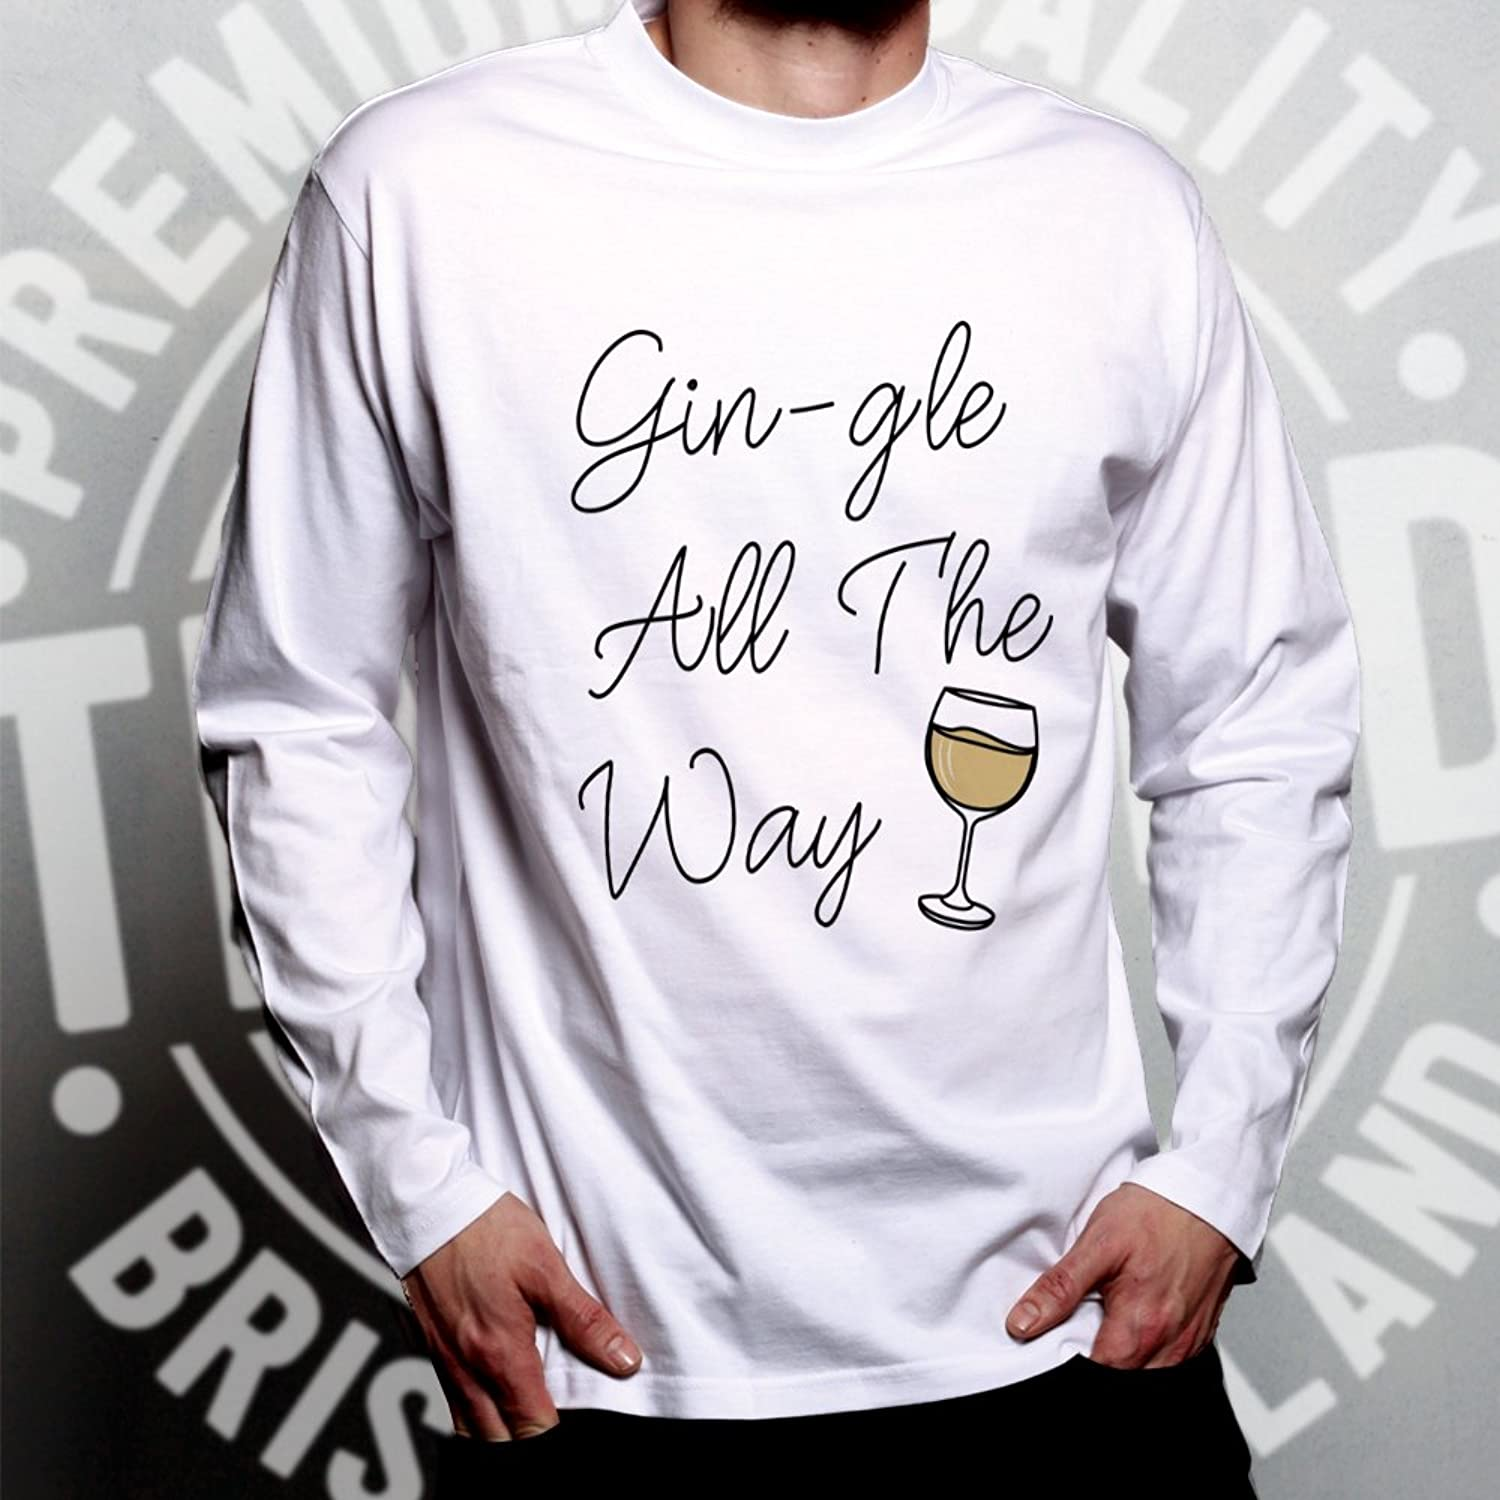 Tim And Ted Christmas Long Sleeve T-Shirt Gin-gle All The Way Gin Drink  Alcohol Santa Claus Sleigh Bells Drunk Drink Party Festive Cool Funny Gift  Present: ...